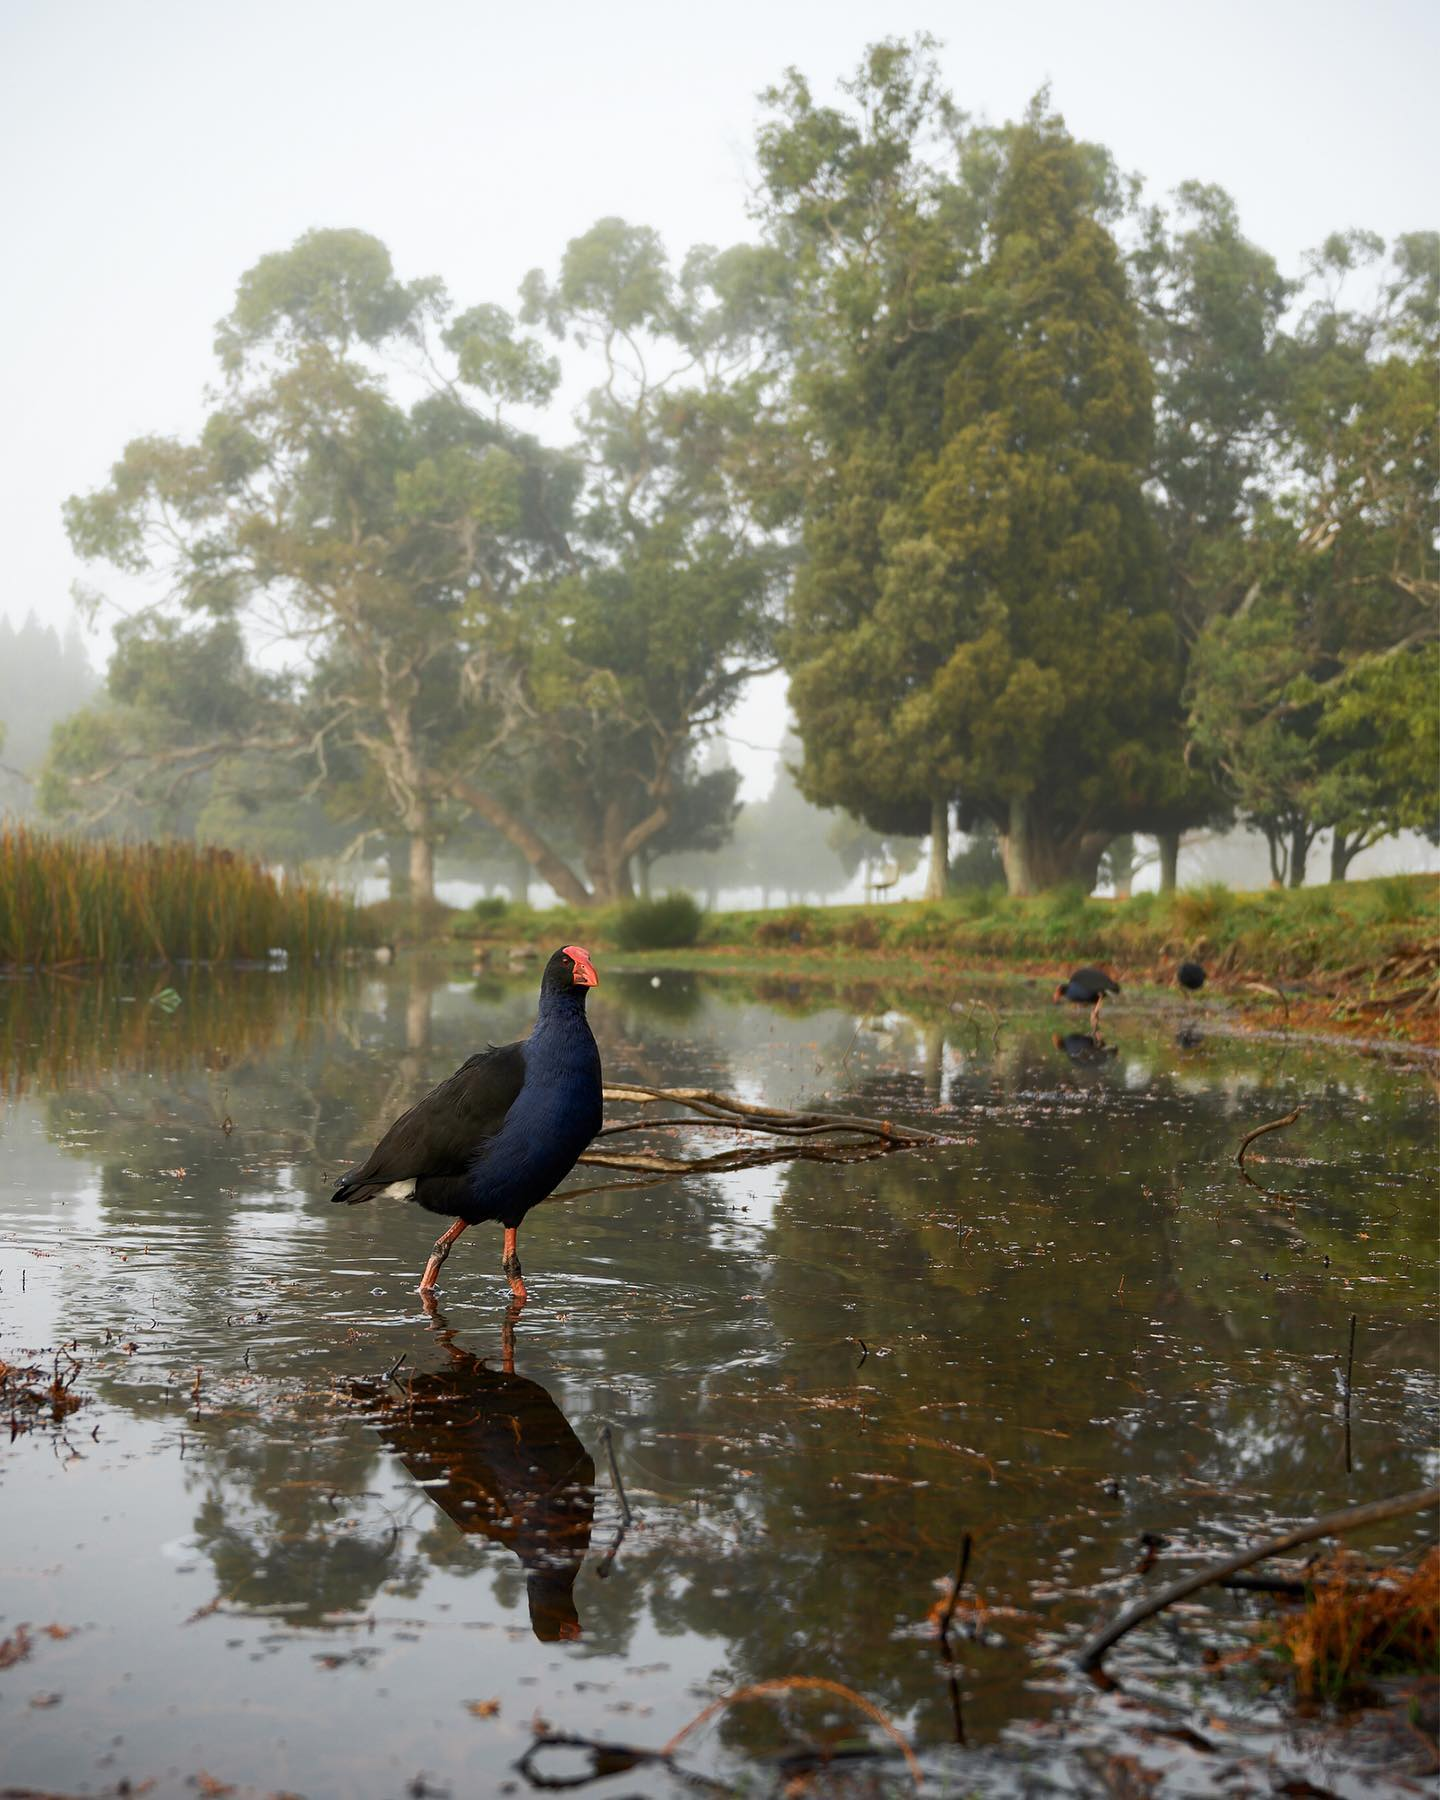 The Pukeko - aka the Swamp Hen - is very abundant and widespread throughout New Zealand. They live in permanent social groups where all eggs are laid in a single nest and the offsprings are raised by all group members. This shot was taken on a cold and foggy morning on Lake Rotorua - Hamilton. . . . . . #adventure #explore #newzealand #nouvellezelande #nzmustdo #purenewzealand #nature #nztravel #travelnz #nzgeo #nikonnz #voyage #grabaseatbestnz #newzealandguide #waikato #ig_newzealand #earth_shotz #lakerotoroa #hamiltoncity #pukeko #nznativebirds #nznative #mightywaikato #reflectionphotography #hamiltoncitynz